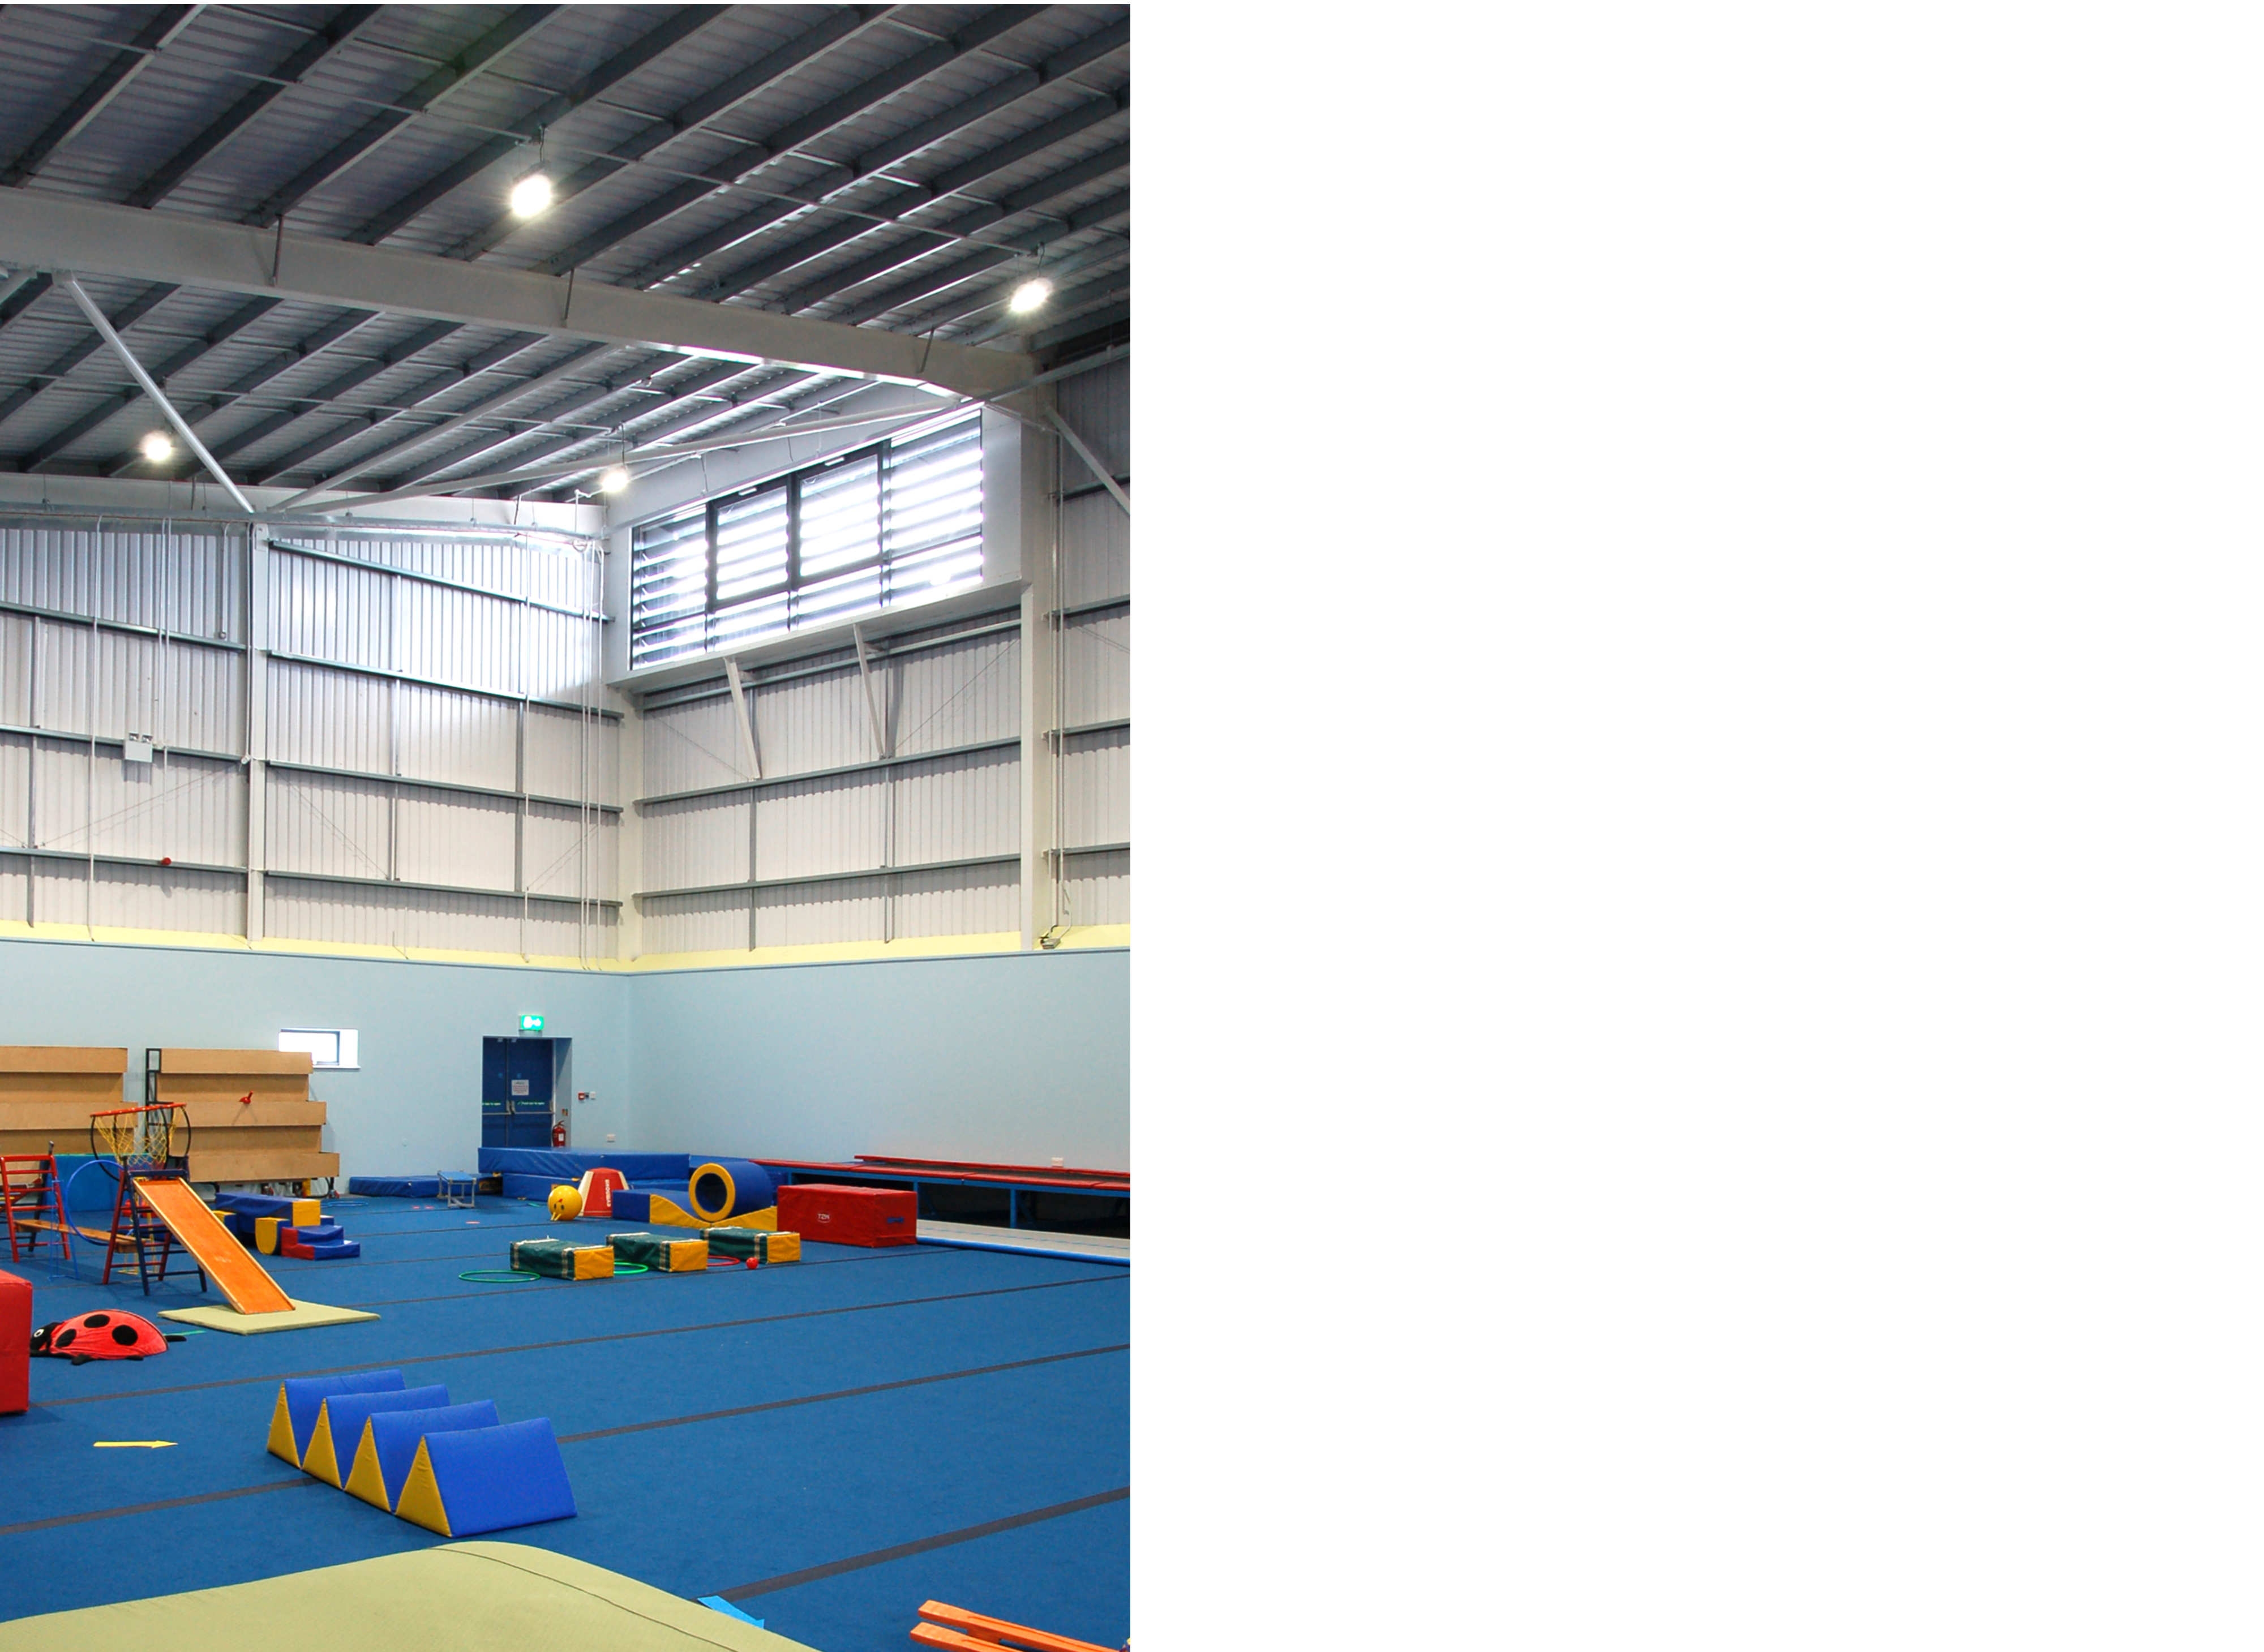 Wiltshire school of gymnastics_09.jpg